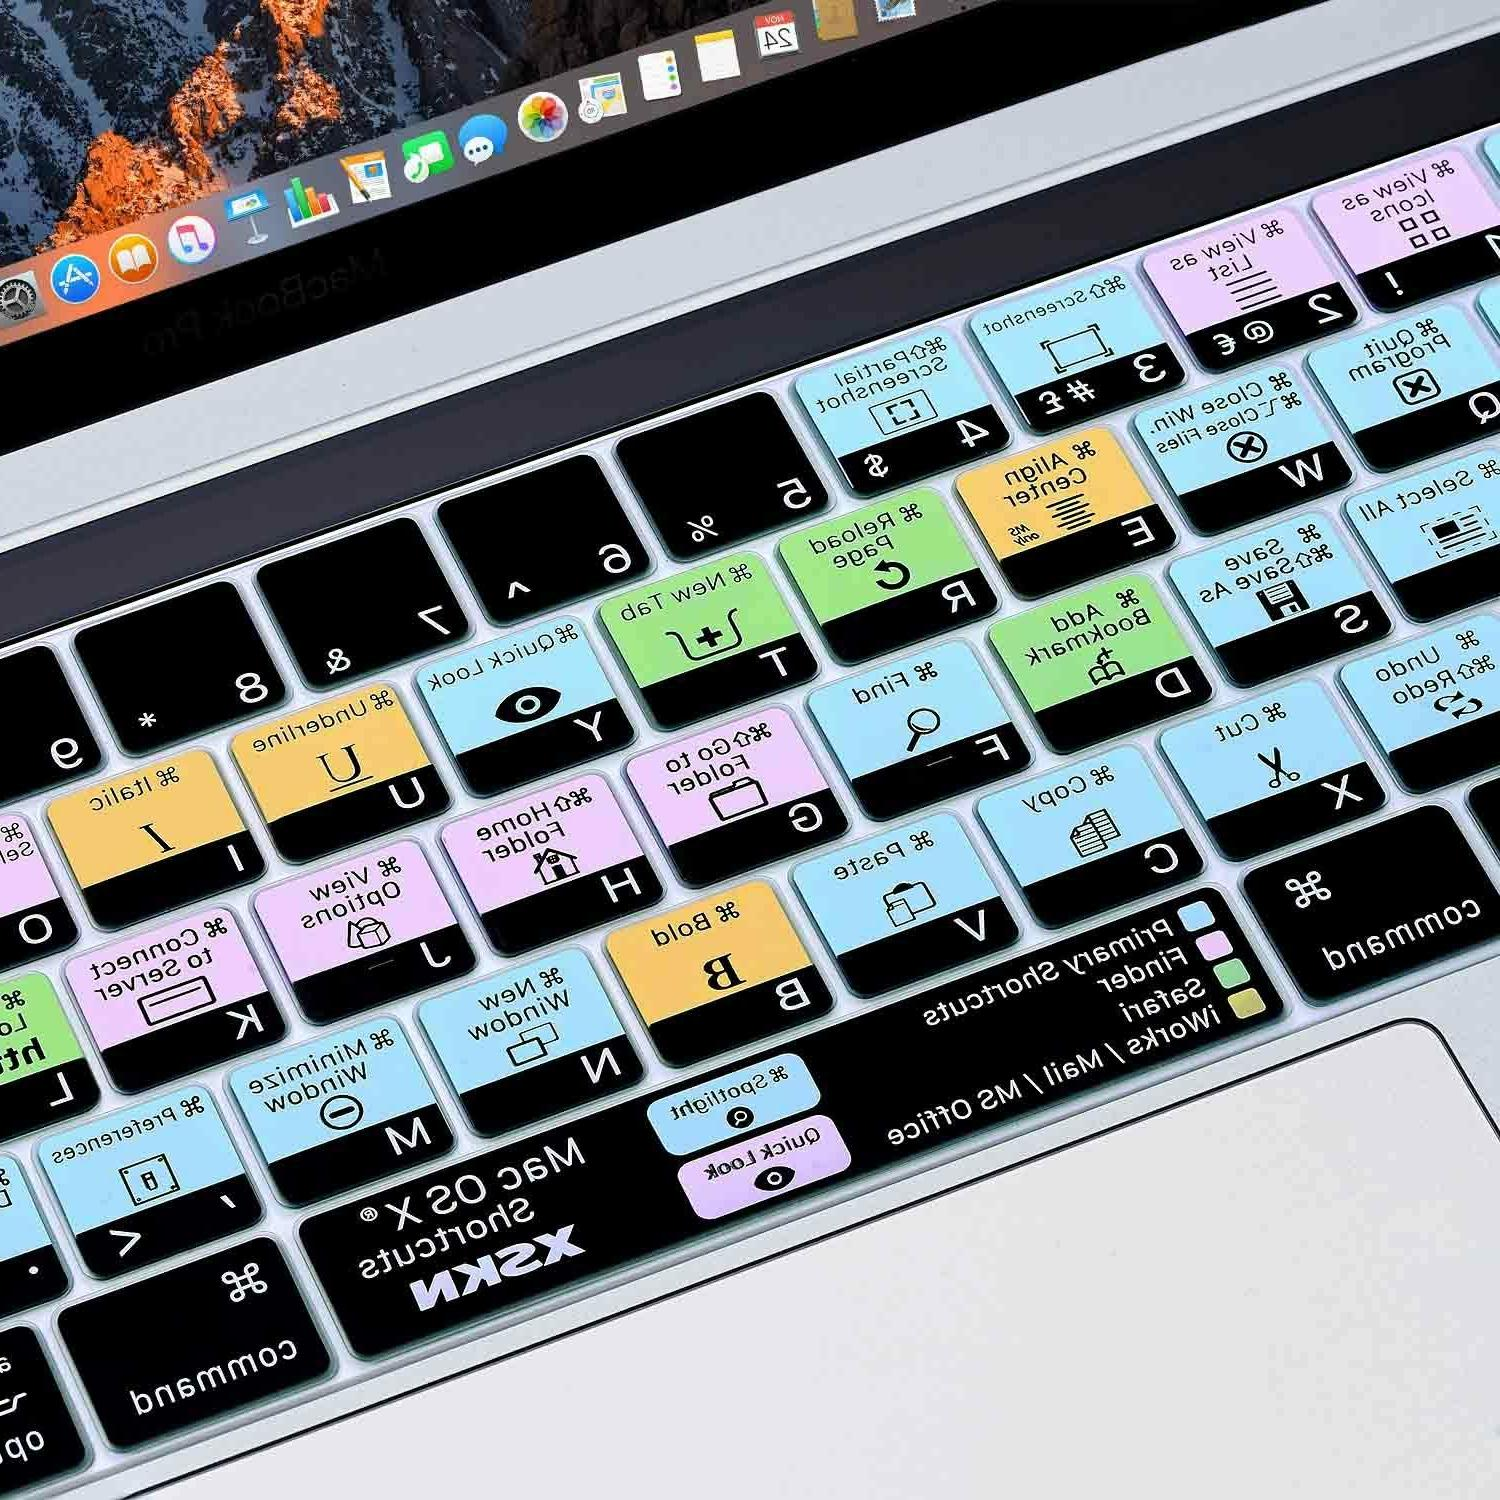 XSKN Mac OS X Shortcut MacBook 13.3/15.4 With Touch